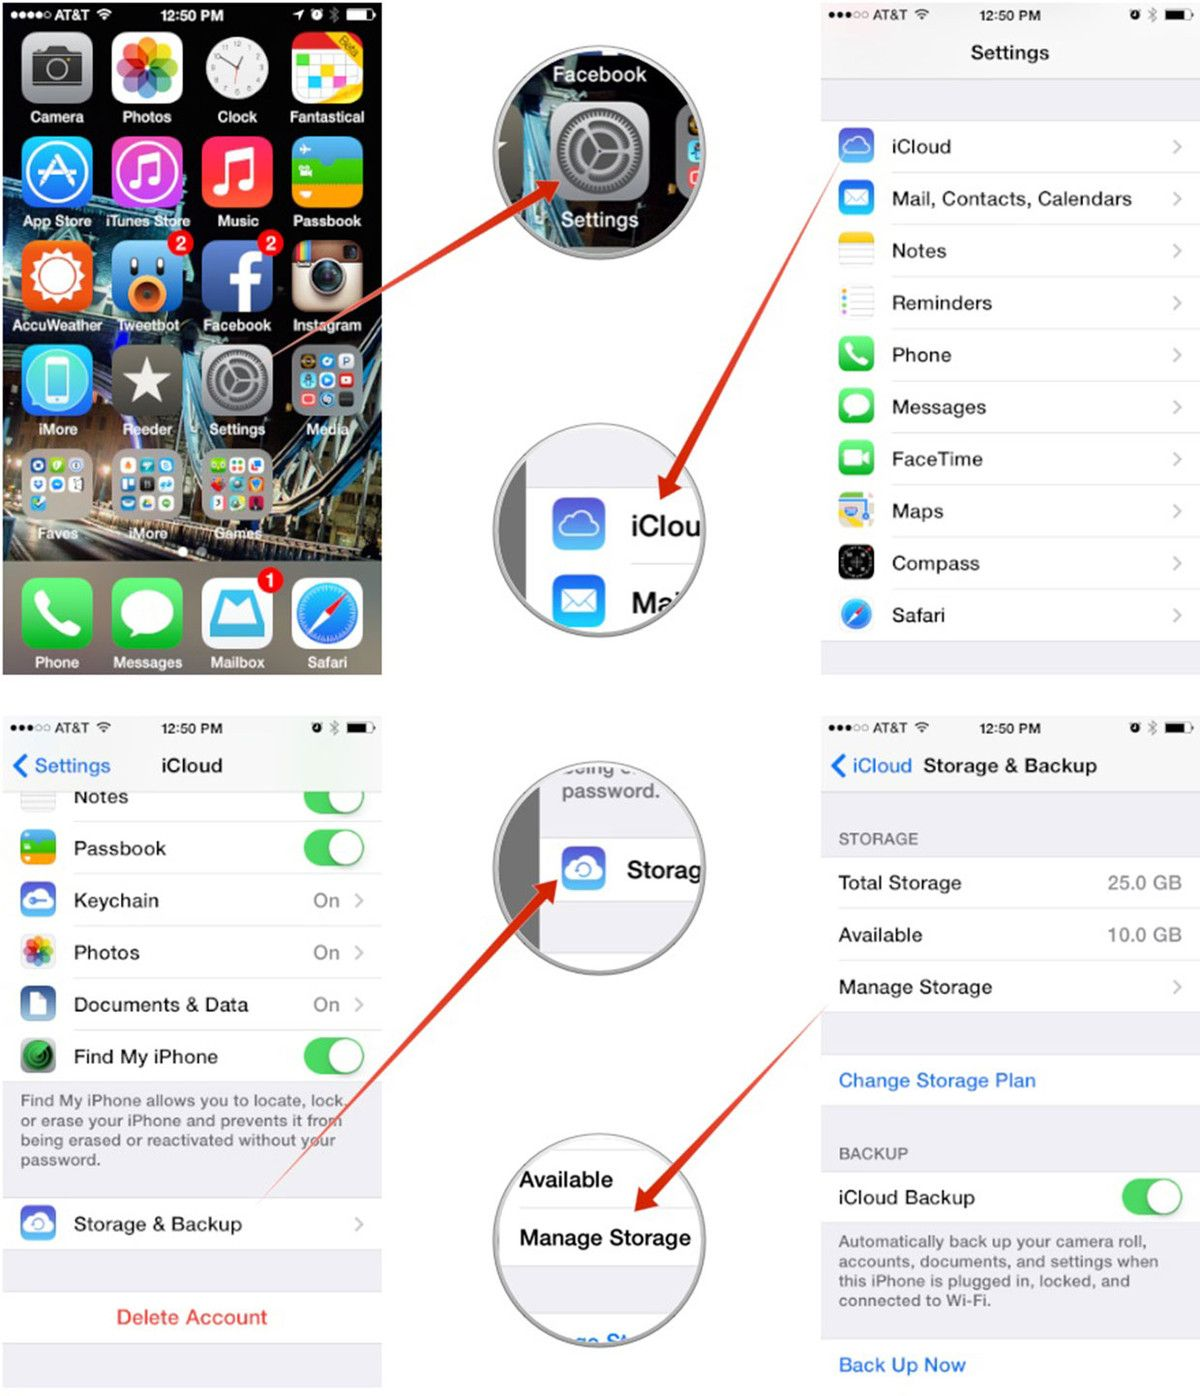 How To Manage Your Icloud Storage On Iphone Or Ipad Iphone Info Iphone Storage Iphone Hacks